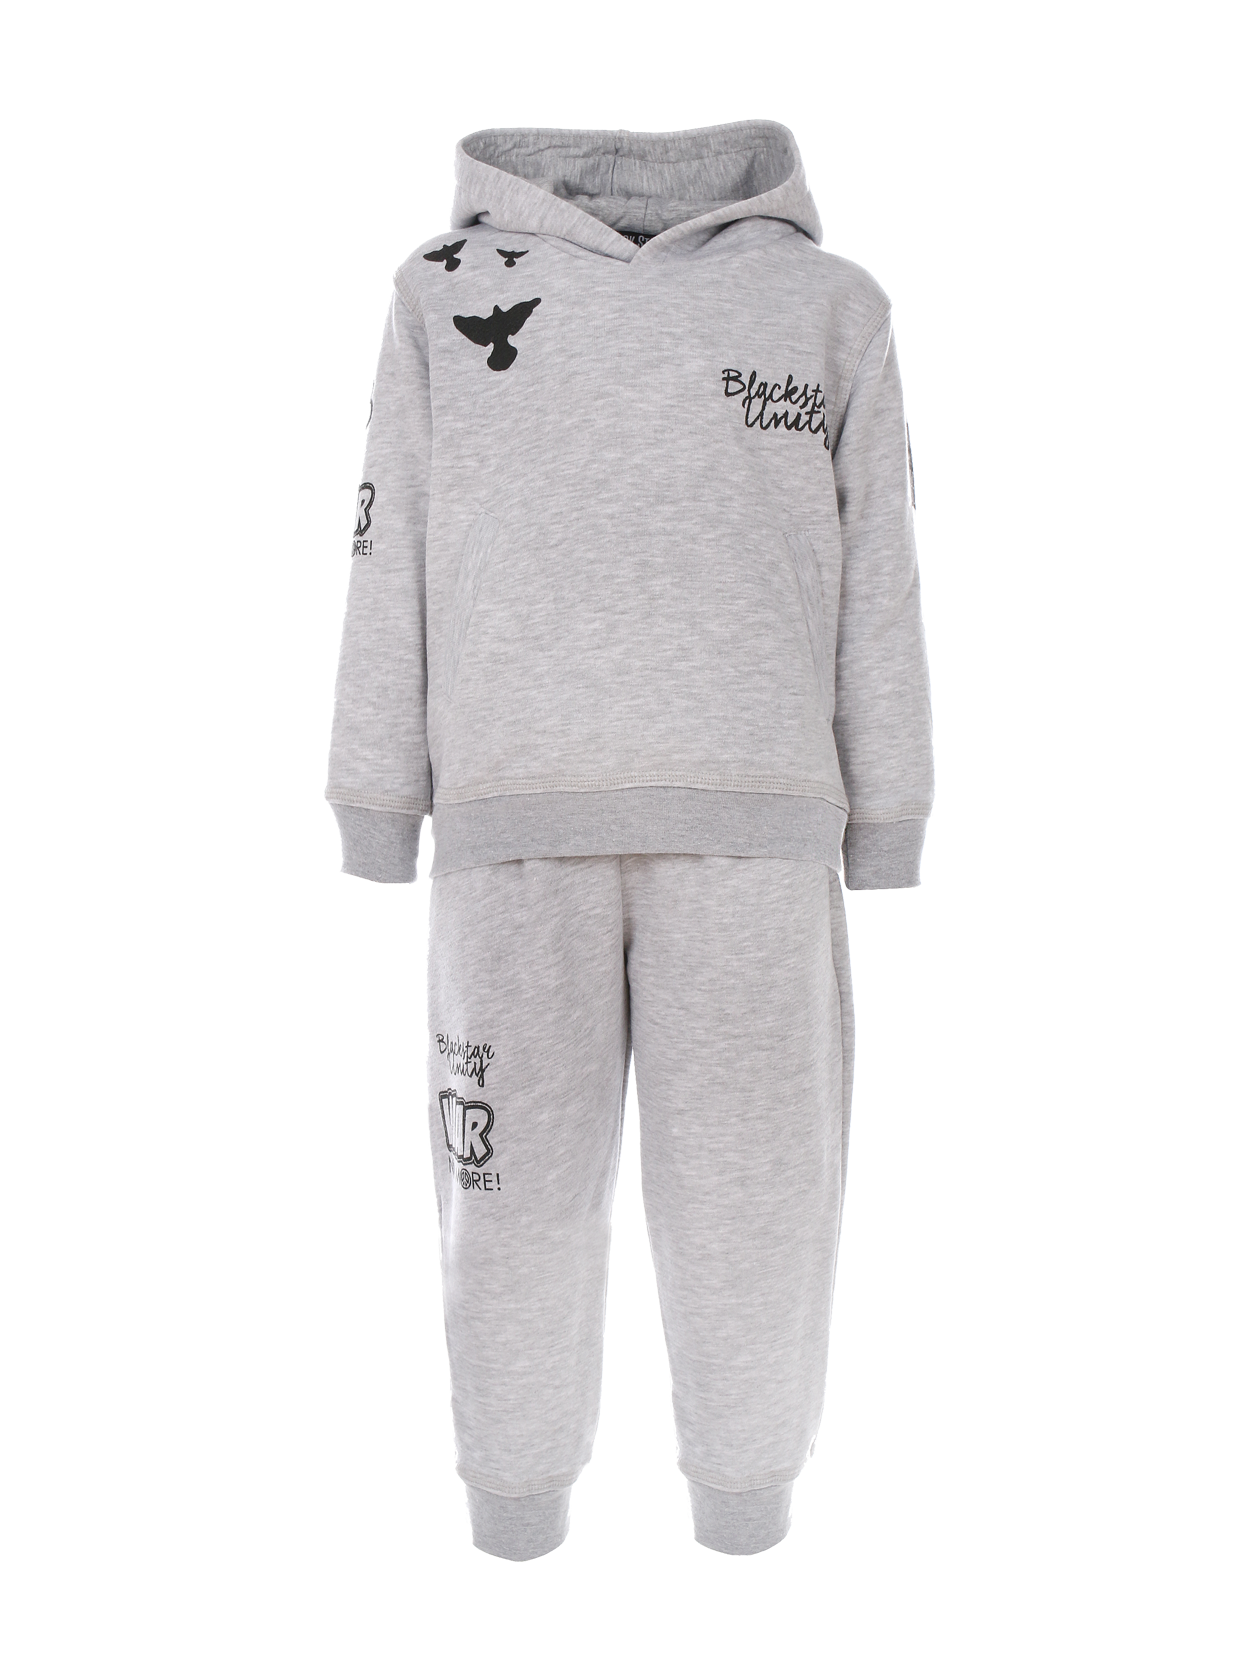 Kids tracksuit Black Star UnityKids sweatshirt and sweatpants set by Black Star Wear. Hoodie with print Blackstar Unity and crows on the chest and printed sleeves. Joggers with side pockets and print on the right side. Avaliable in gray.<br><br>size: 5-6 years<br>color: Gray melange<br>gender: unisex